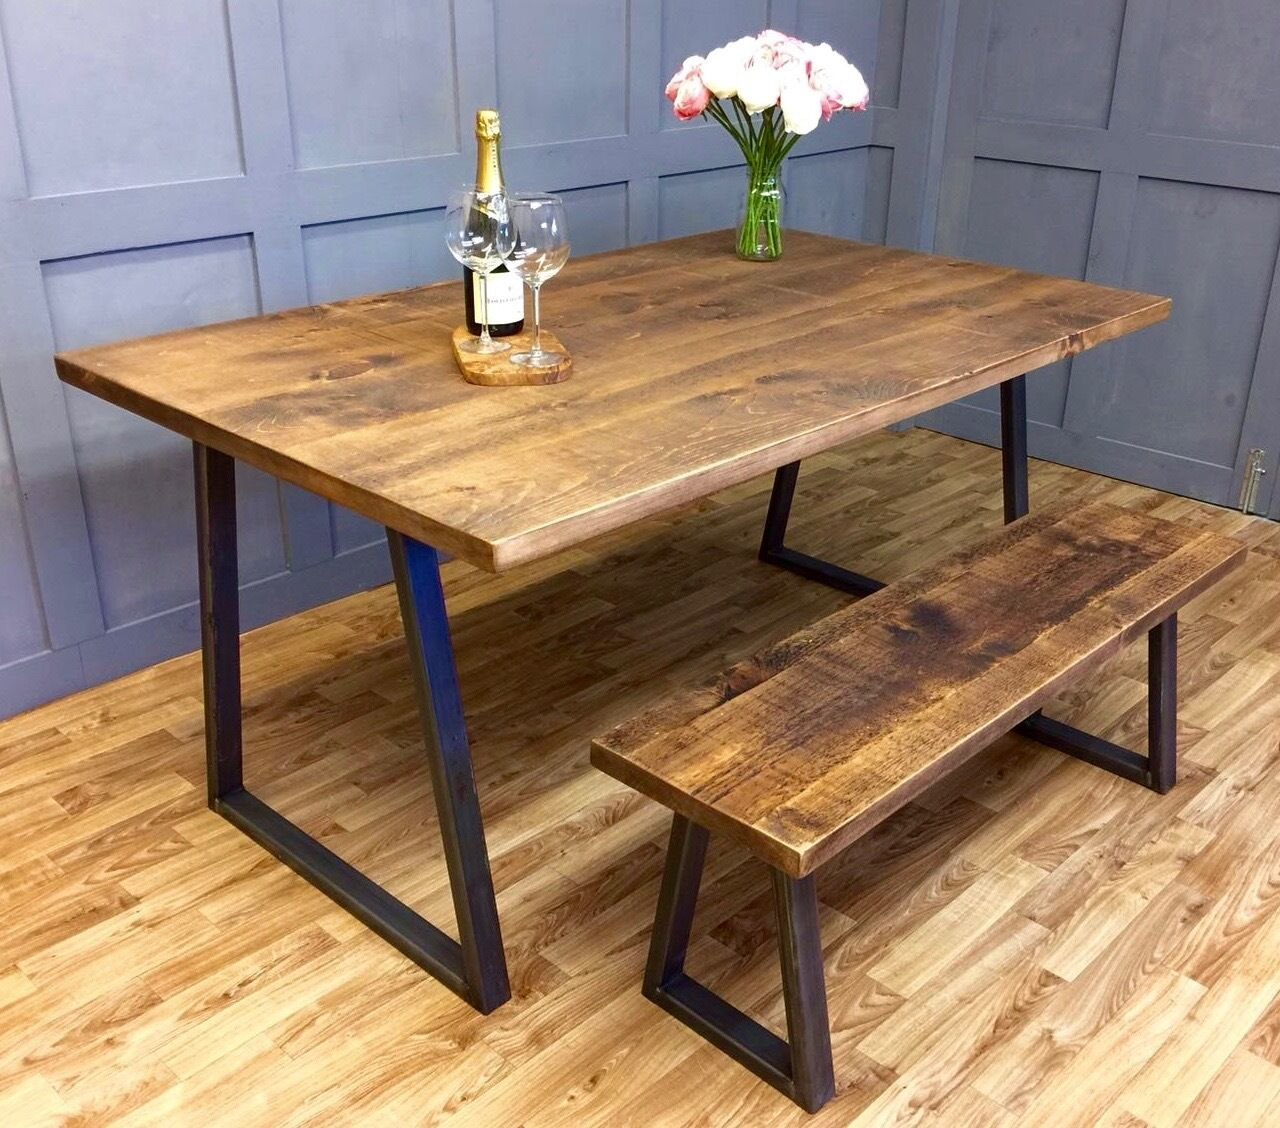 Industrial reclaimed dining table rustic solid antique kitchen farmhouse table - Industrial kitchen tables ...